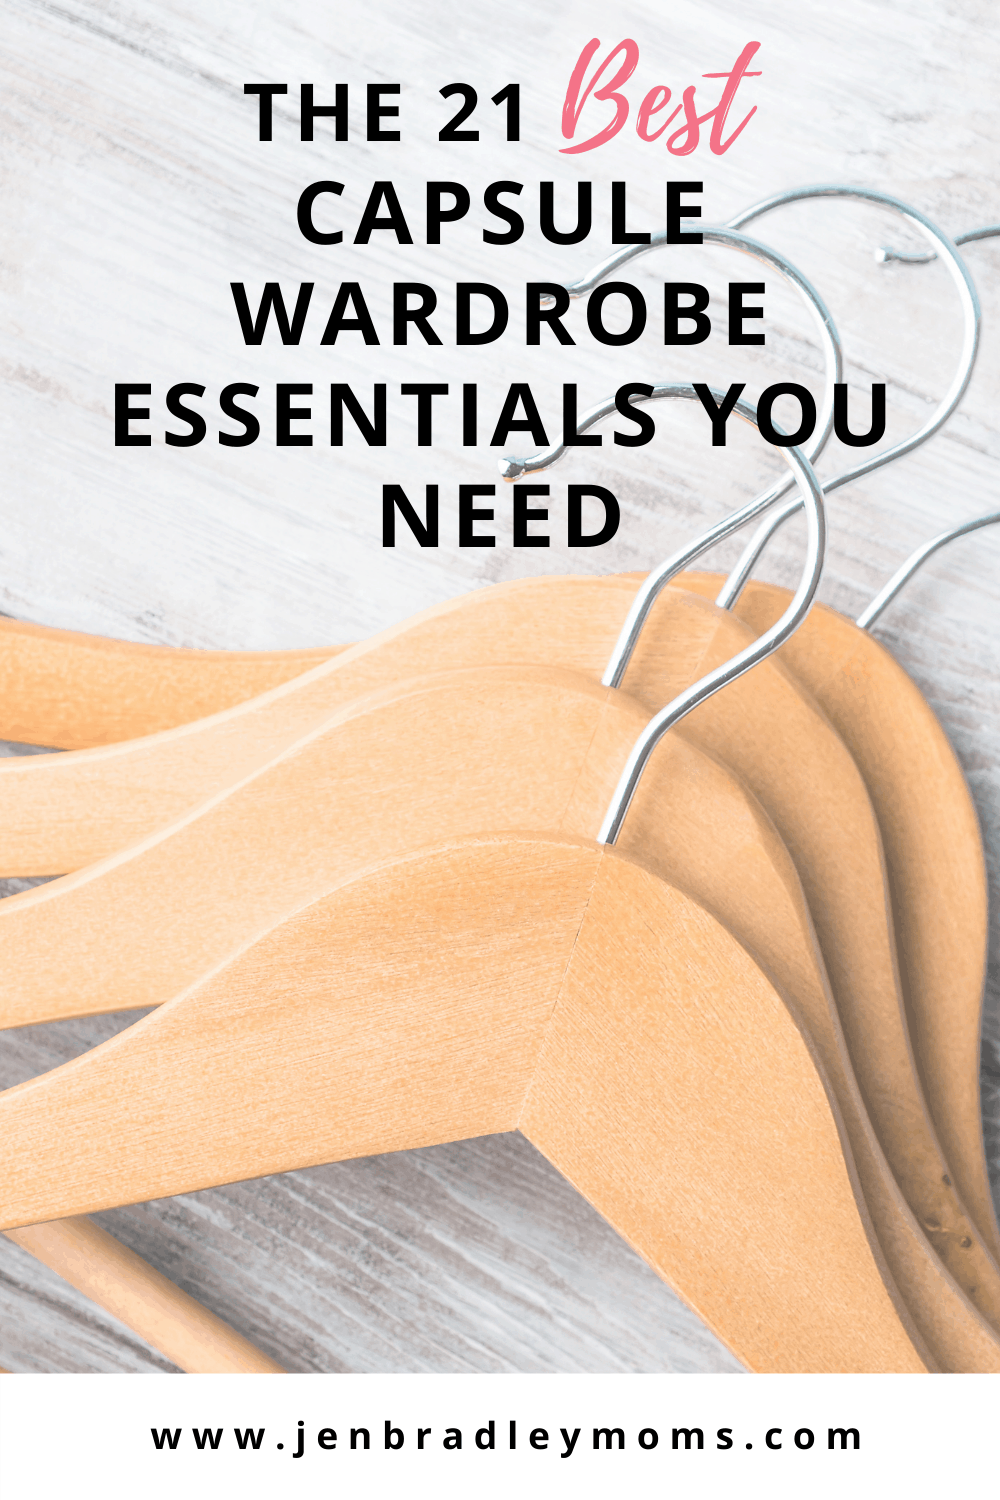 The 21 Best Capsule Wardrobe Essentials You Need ASAP